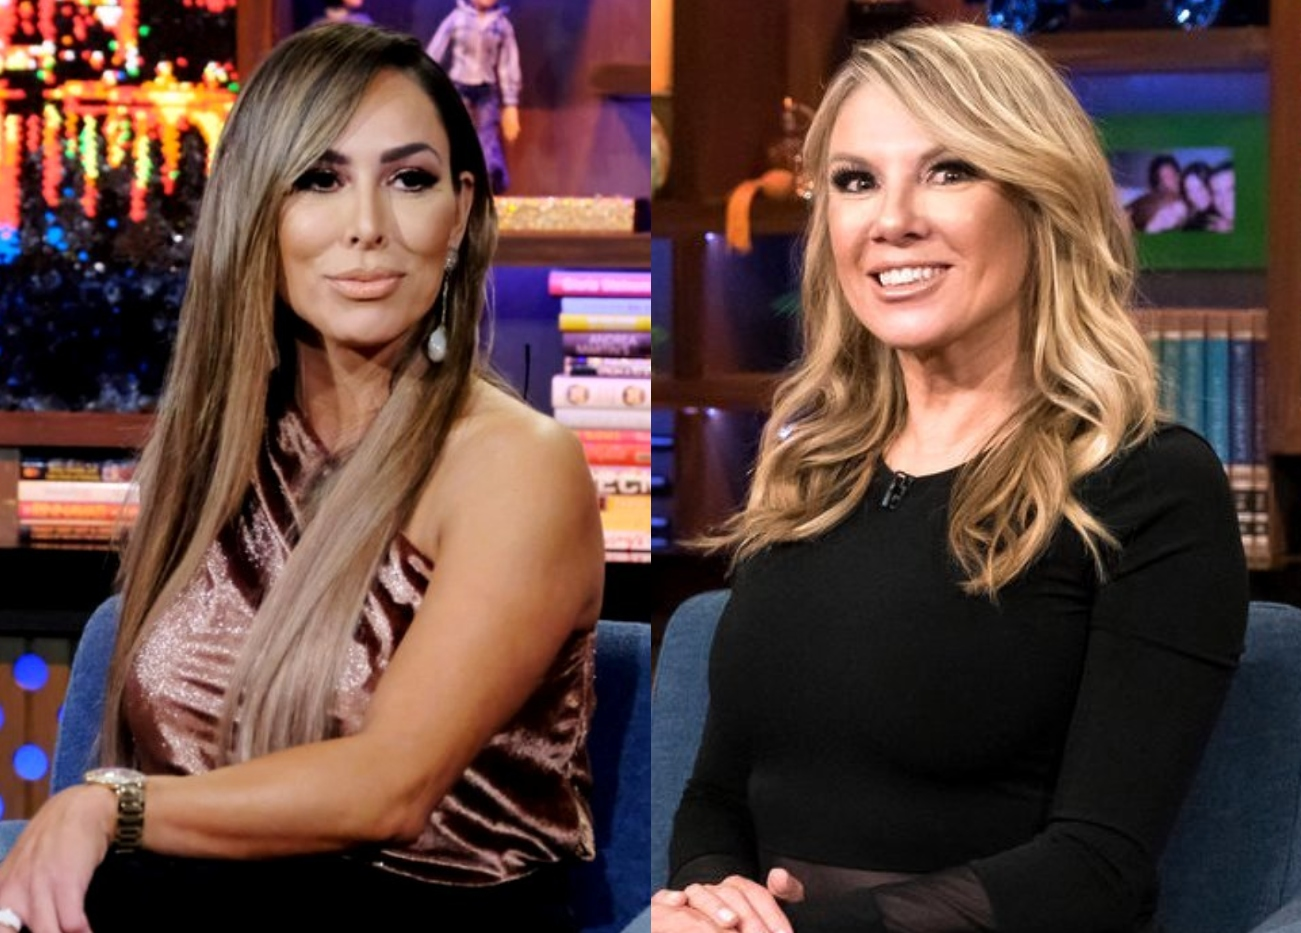 RHOC Alum Kelly Dodd Explains Why Ramona Singer Stopped Taking Photos With Her And Calls Out Housewives Accused Of Crimes As She Shares Who Production Insiders Can't Stand, Plus Will Kelly Vote For Steve Lodge?